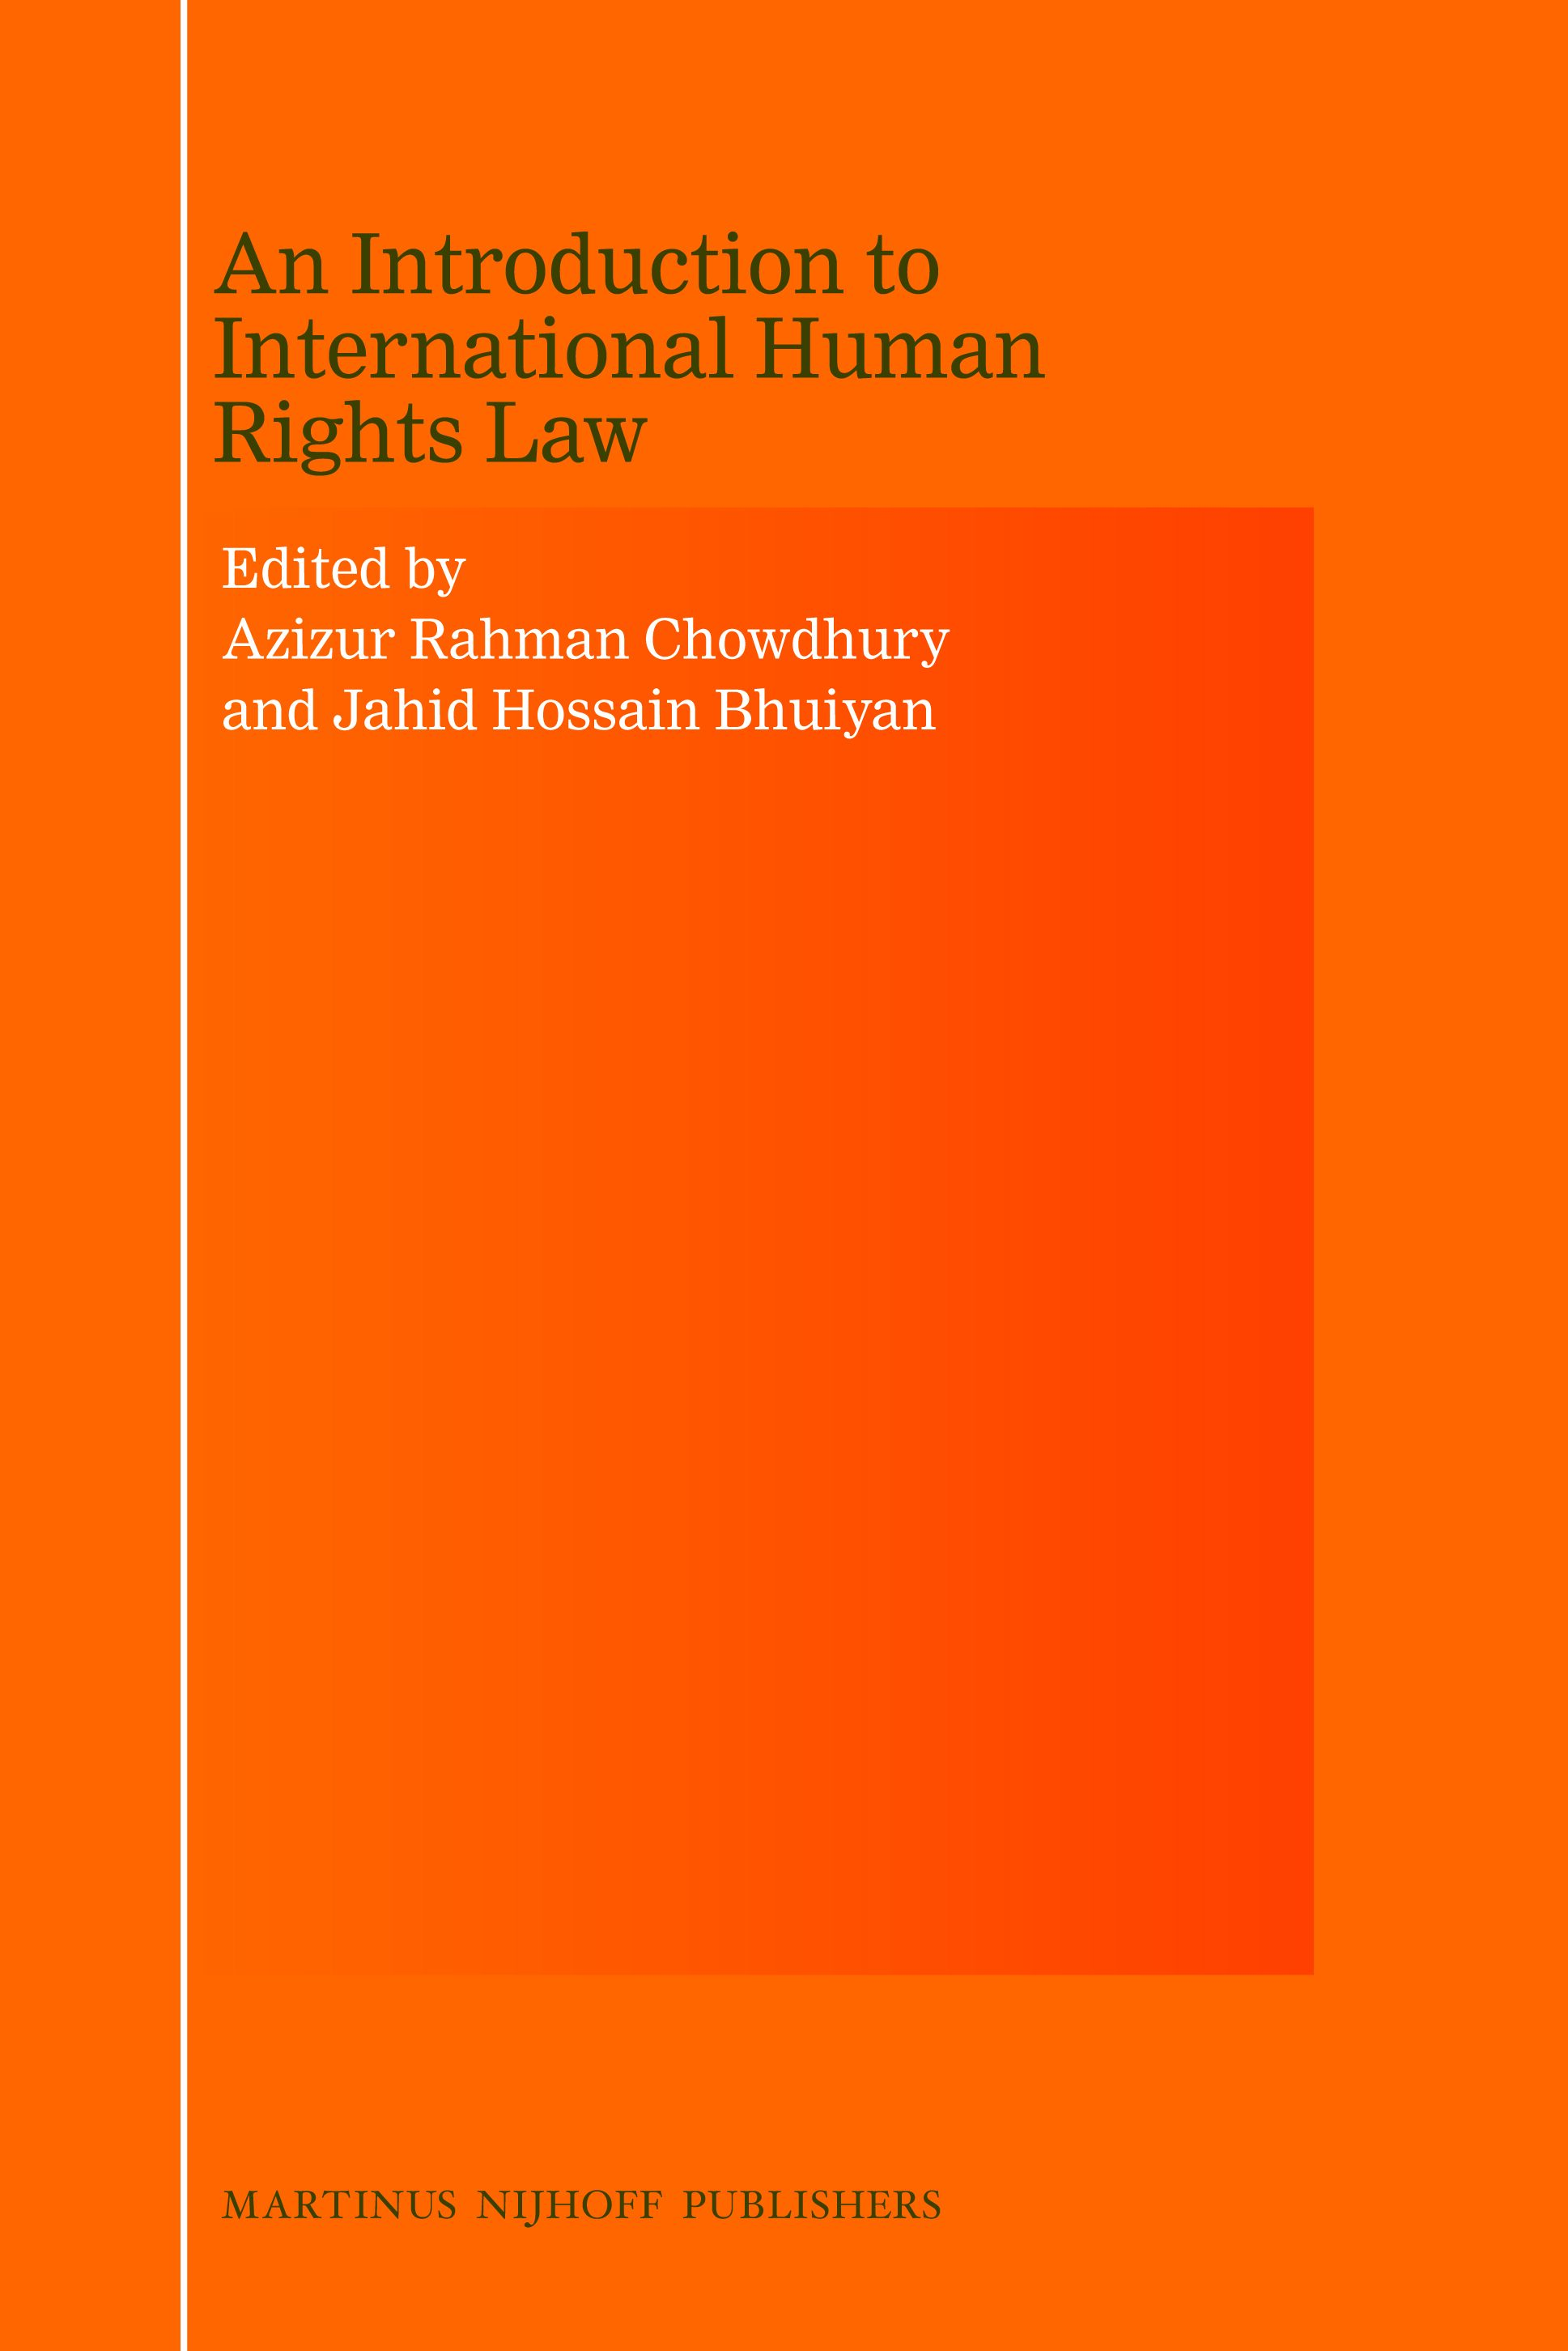 19+ An Introduction to International Human Rights Law   Brill Image